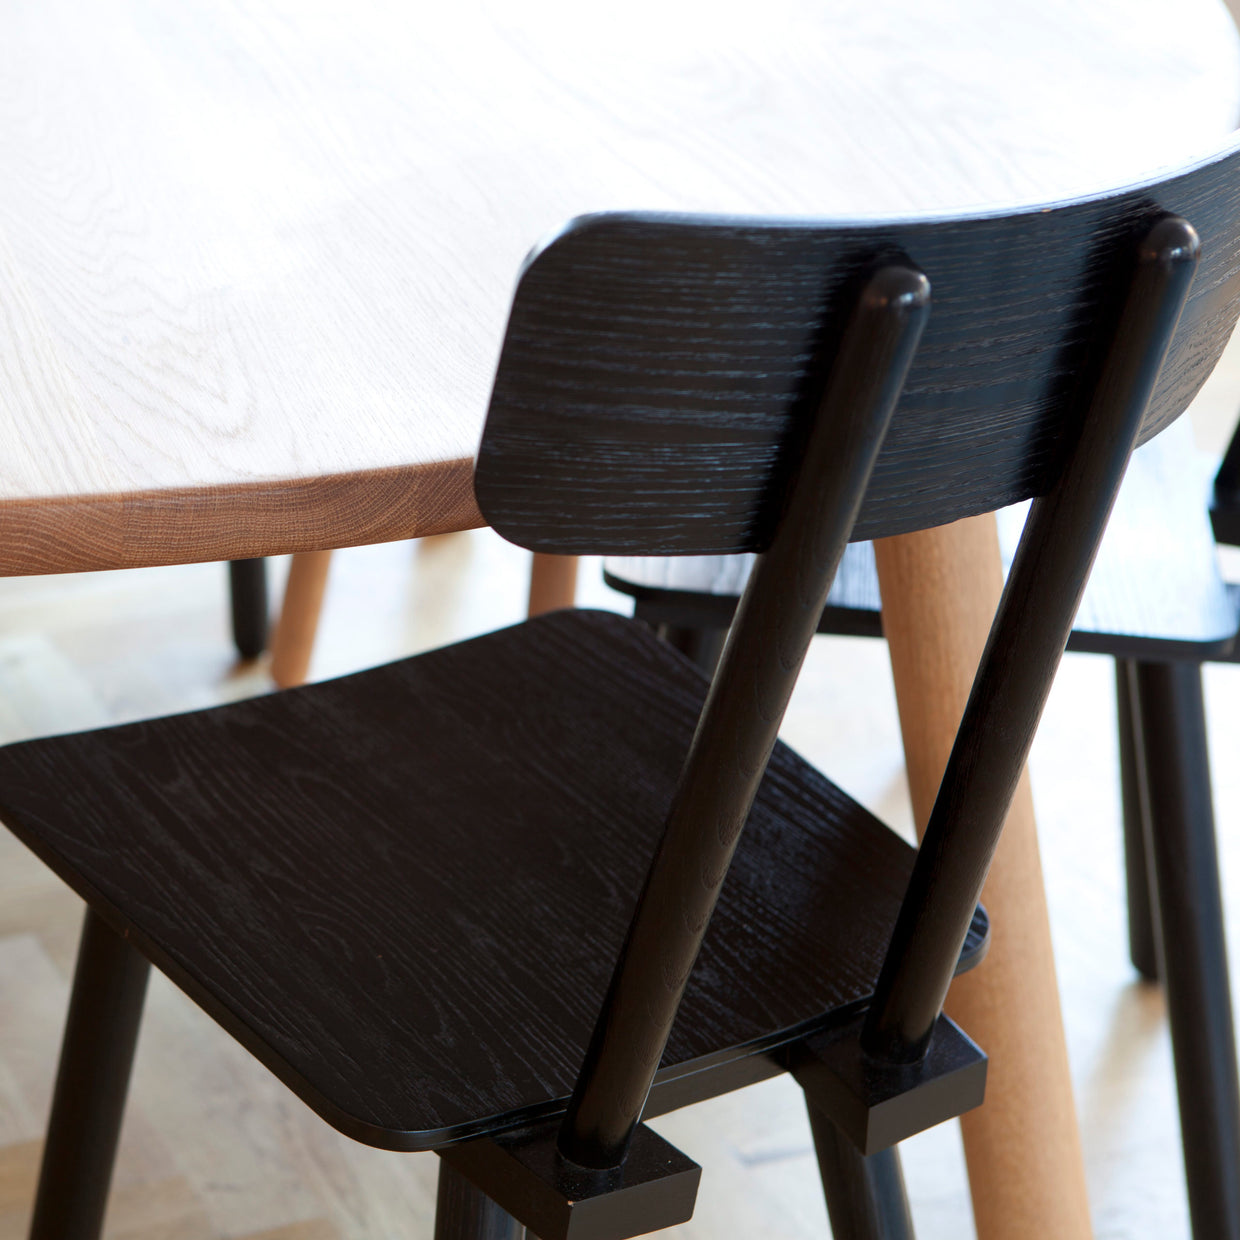 Another Chair - black